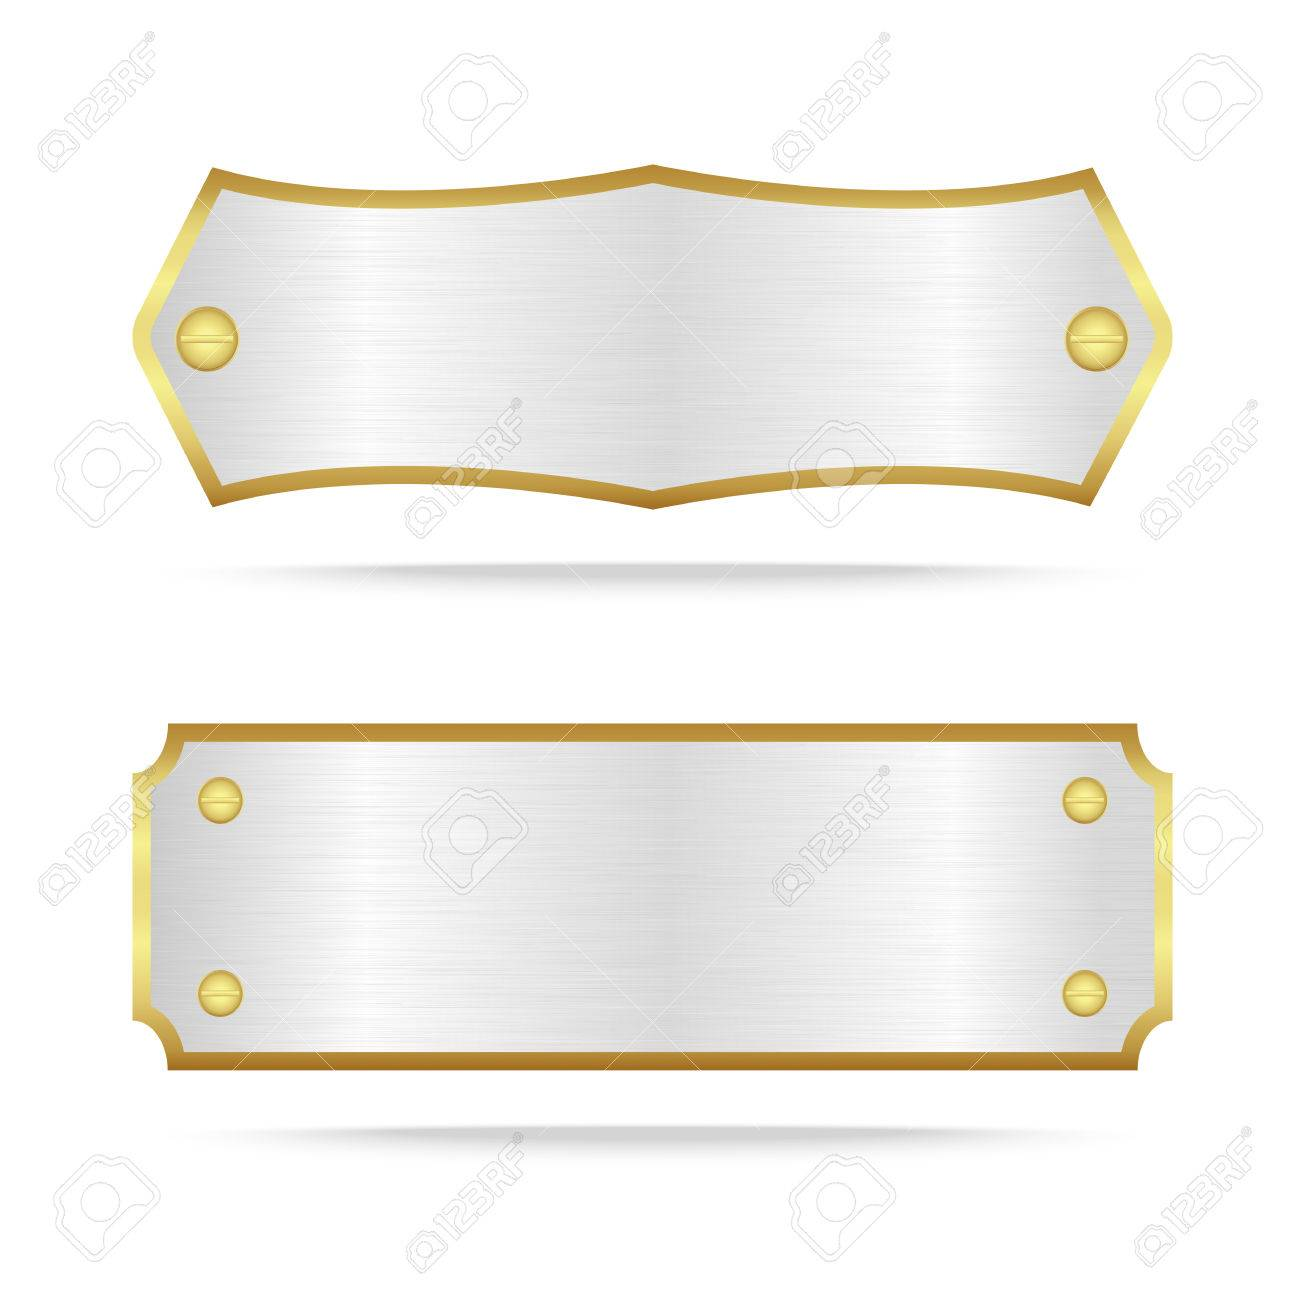 Vector Silver And Gold Metal Name Plate Or Silver Metal Label Royalty Free Cliparts Vectors And Stock Illustration Image 60239617